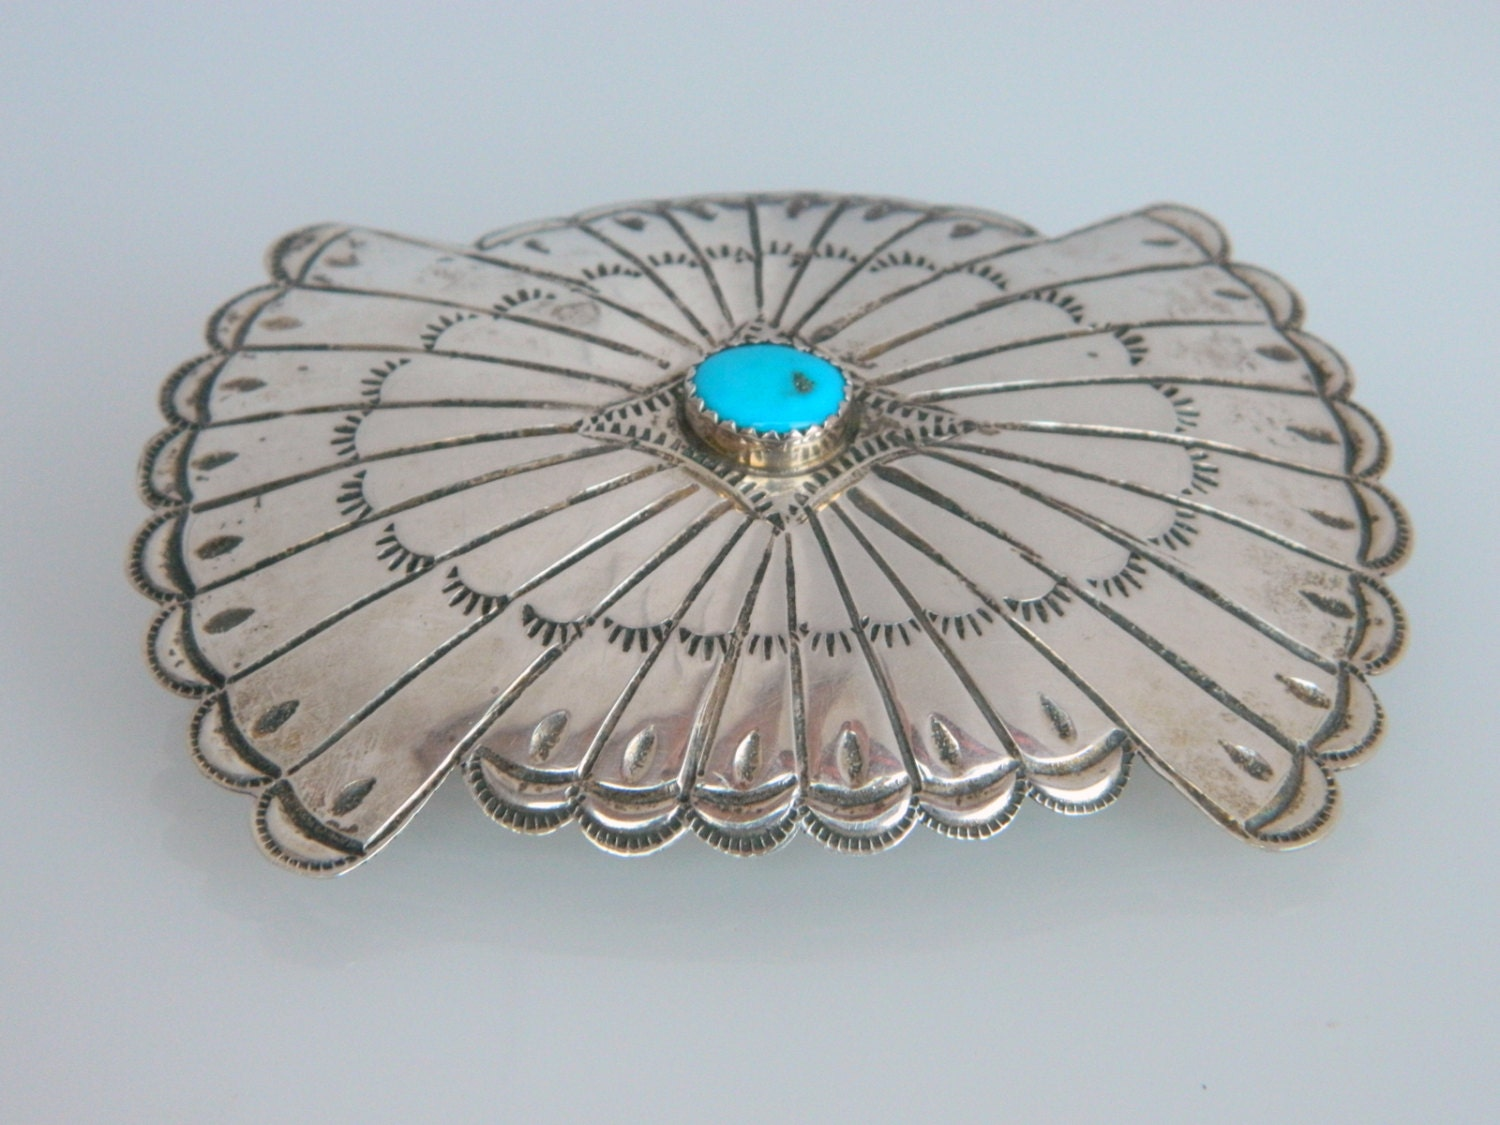 Navajo Vintage Turquoise Hand Stamped Sterling Silver Hair Piece Barrette Native American Indian - NativeJewelryStore